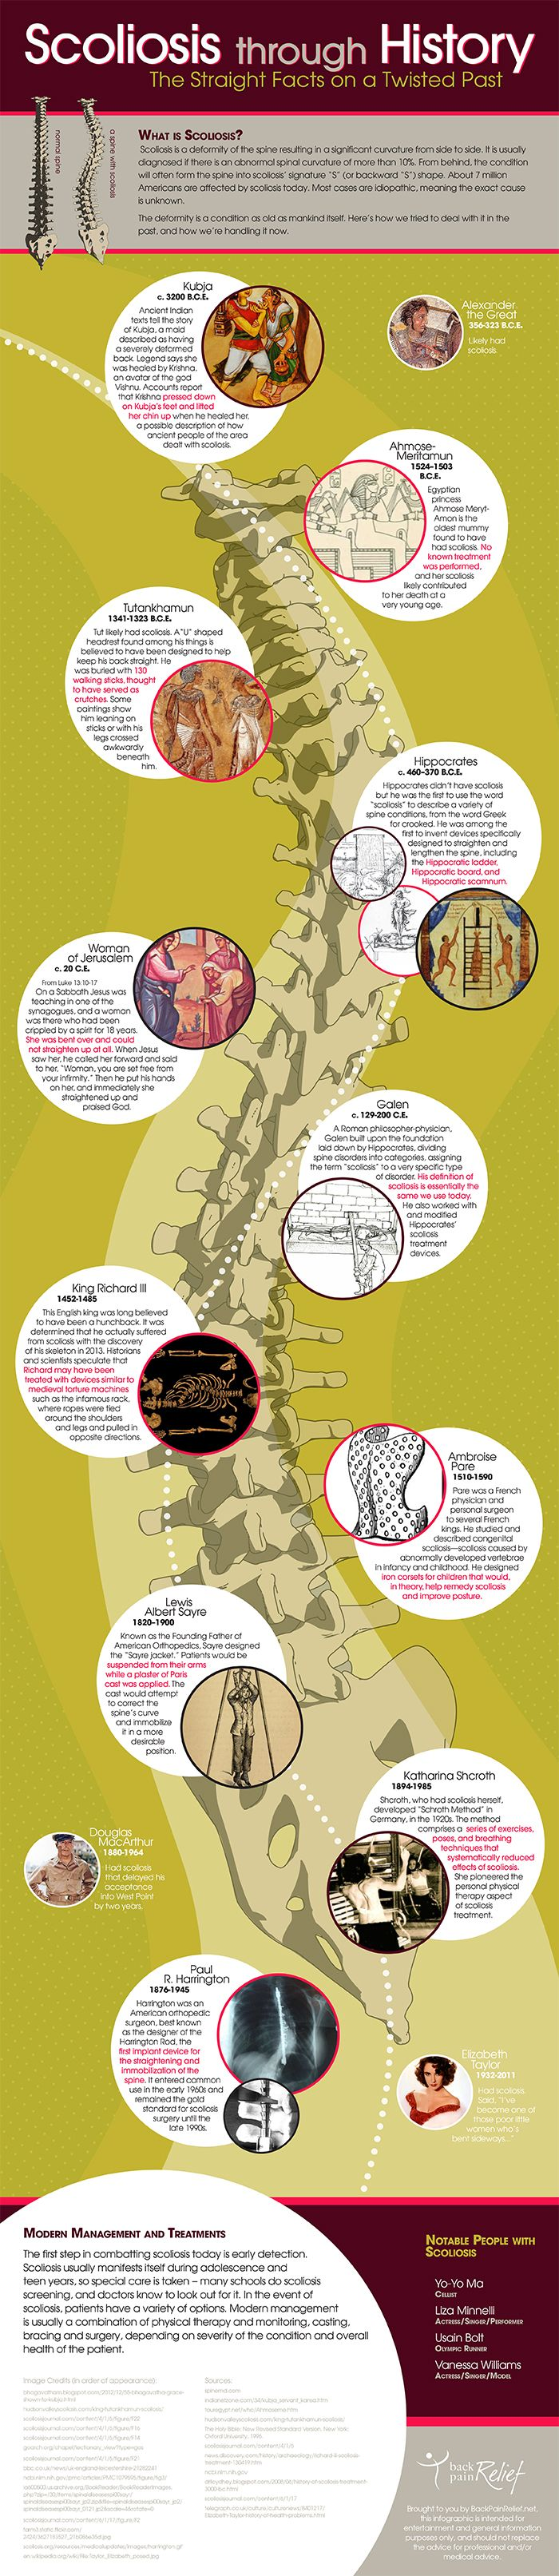 History of physical therapy treatment - Scoliosis Through History Infographic